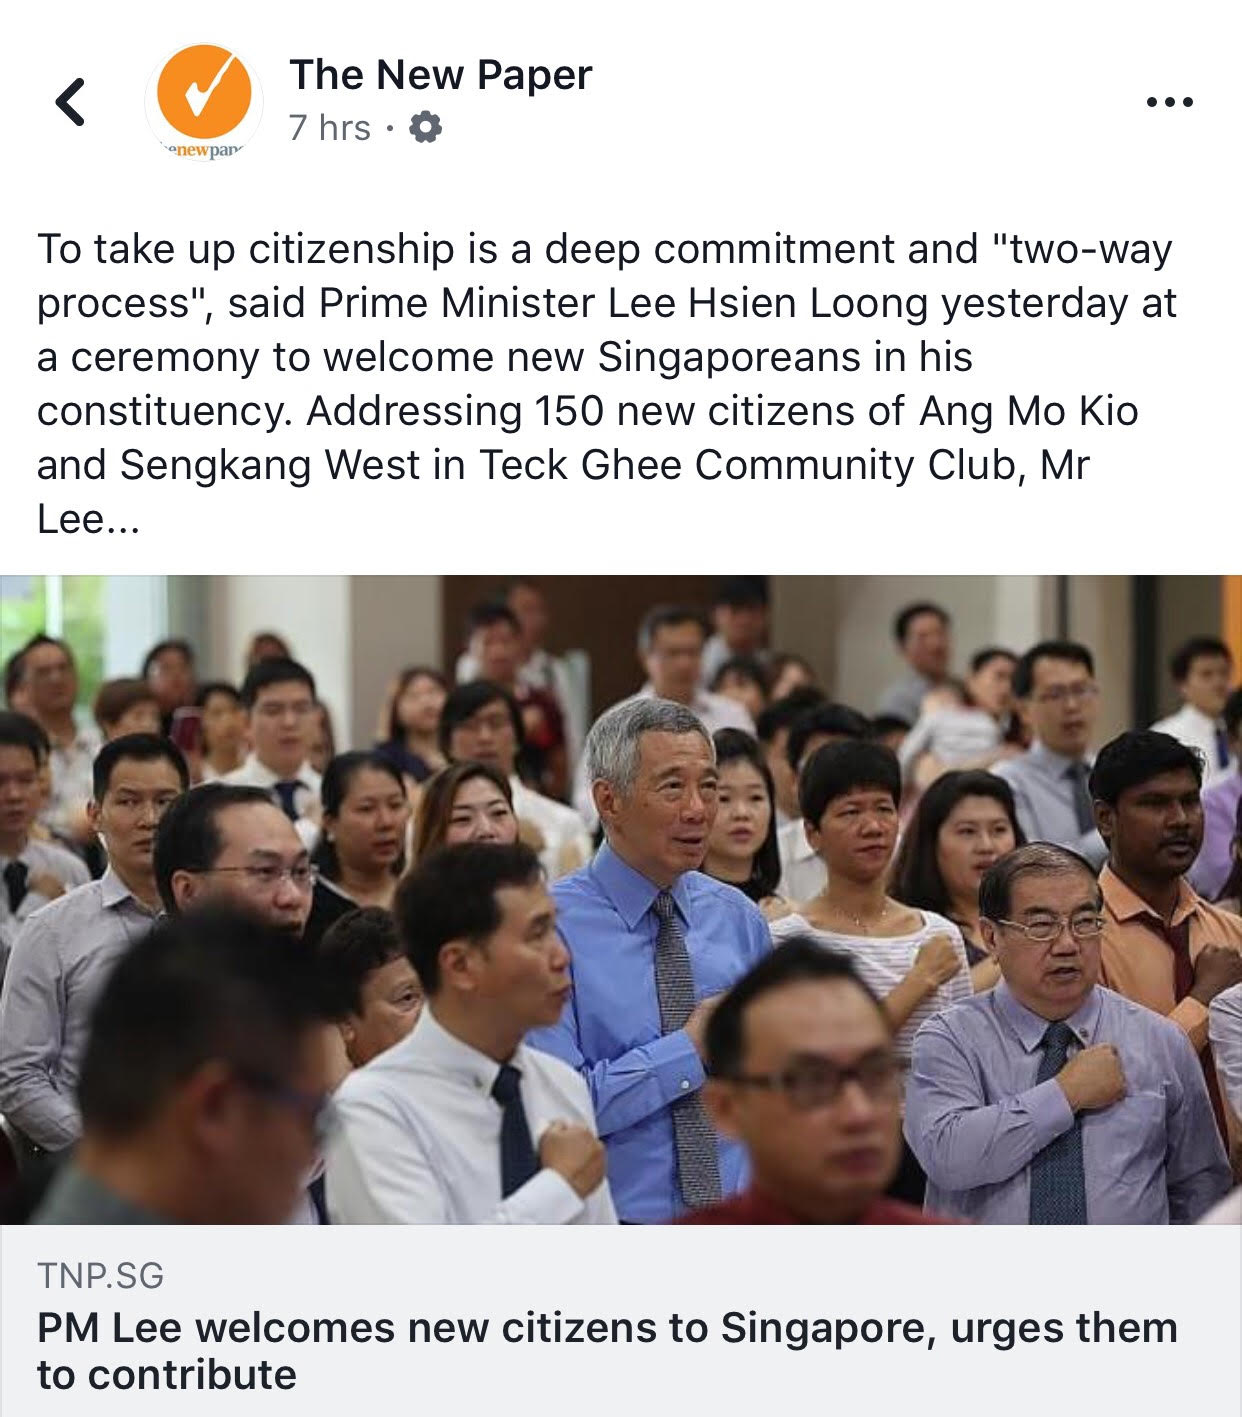 TNP crops out new citizen who uses left hand to pledge allegiance to